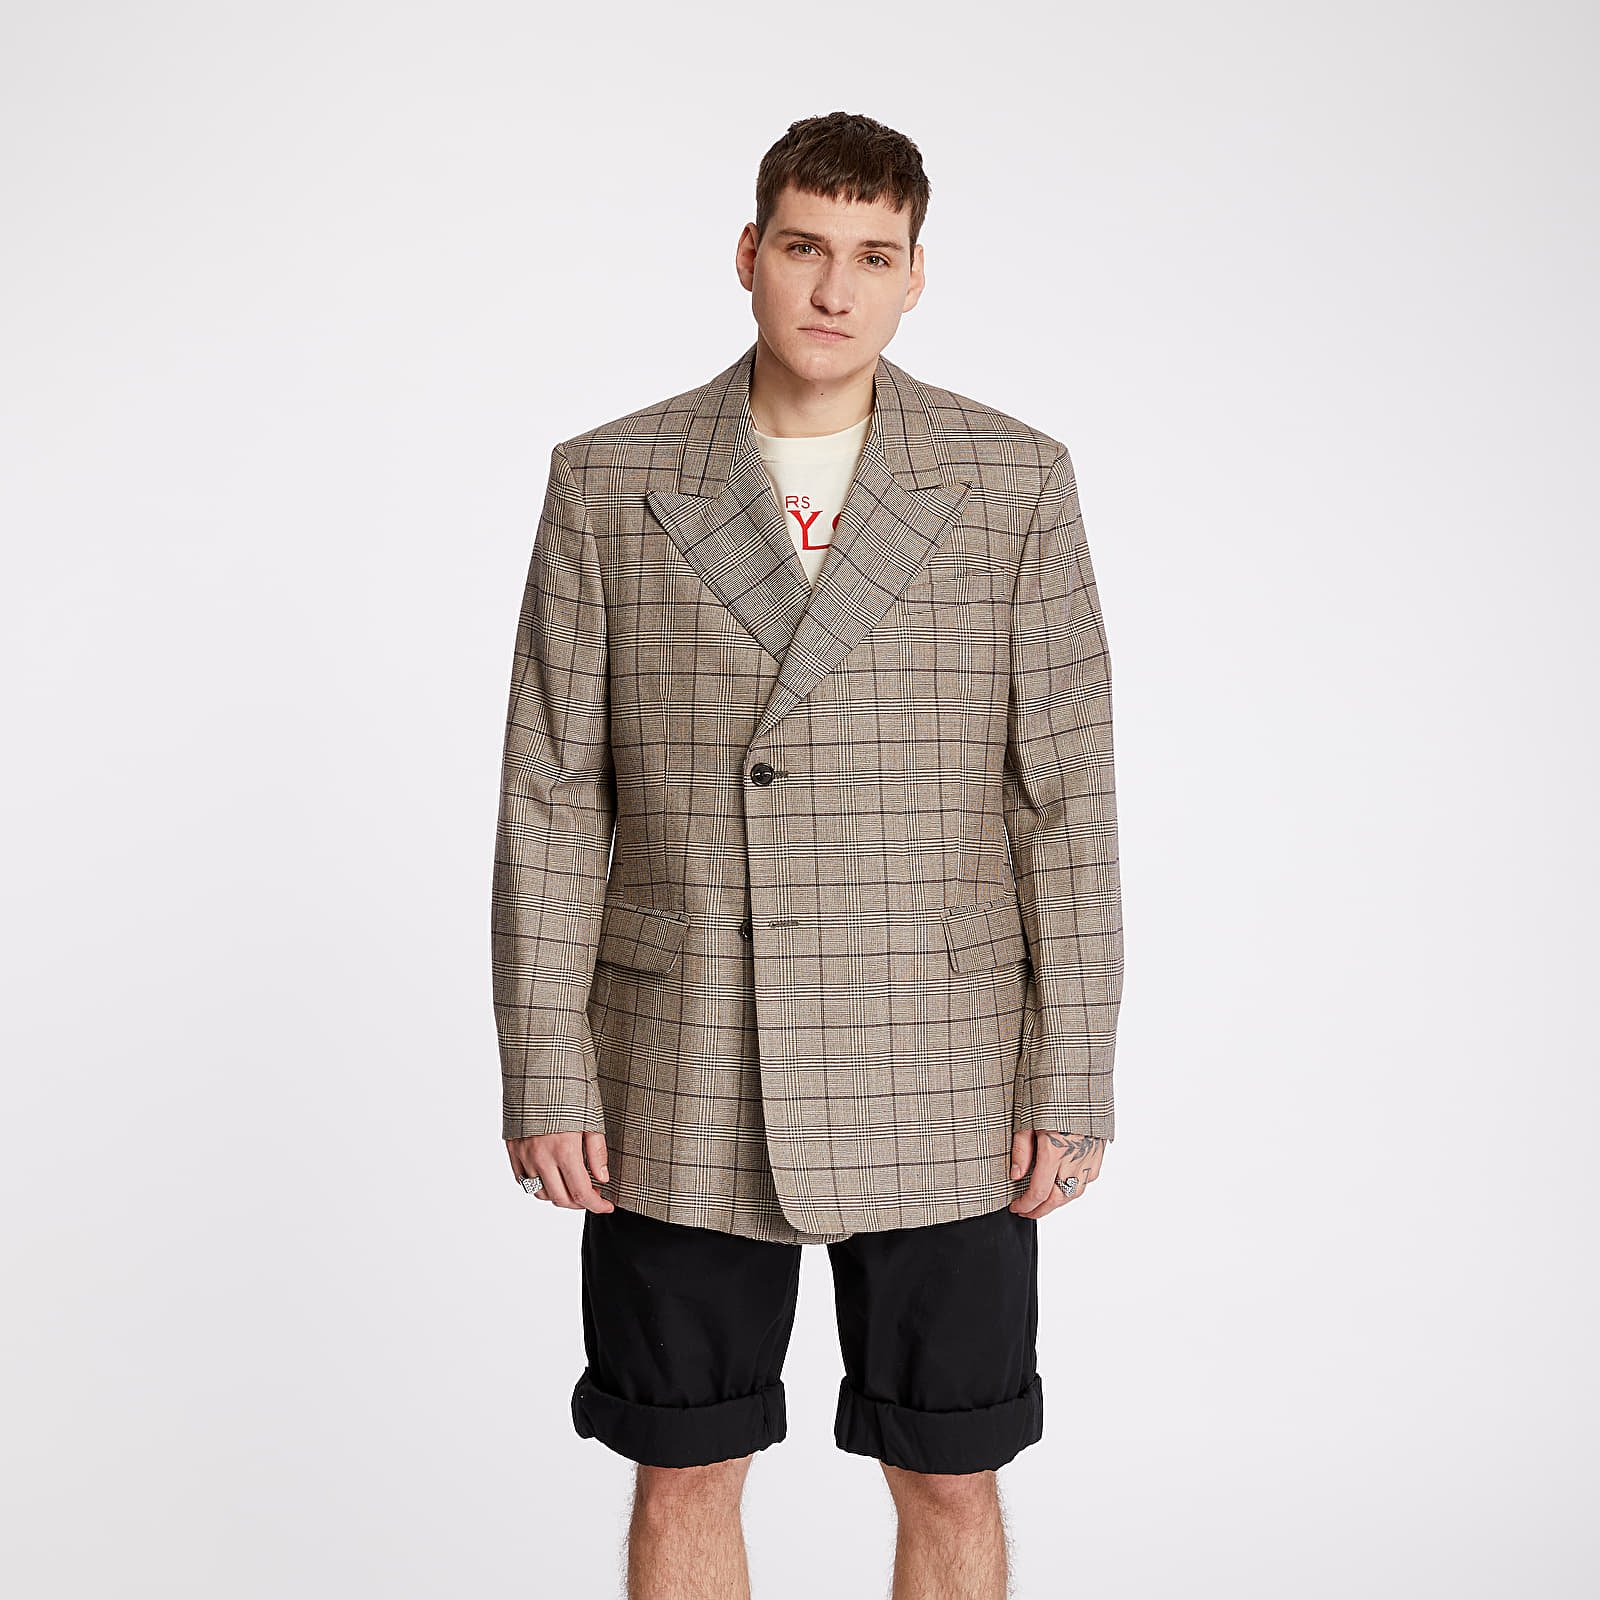 Coats RAF SIMONS Double Breasted Blazer Brown